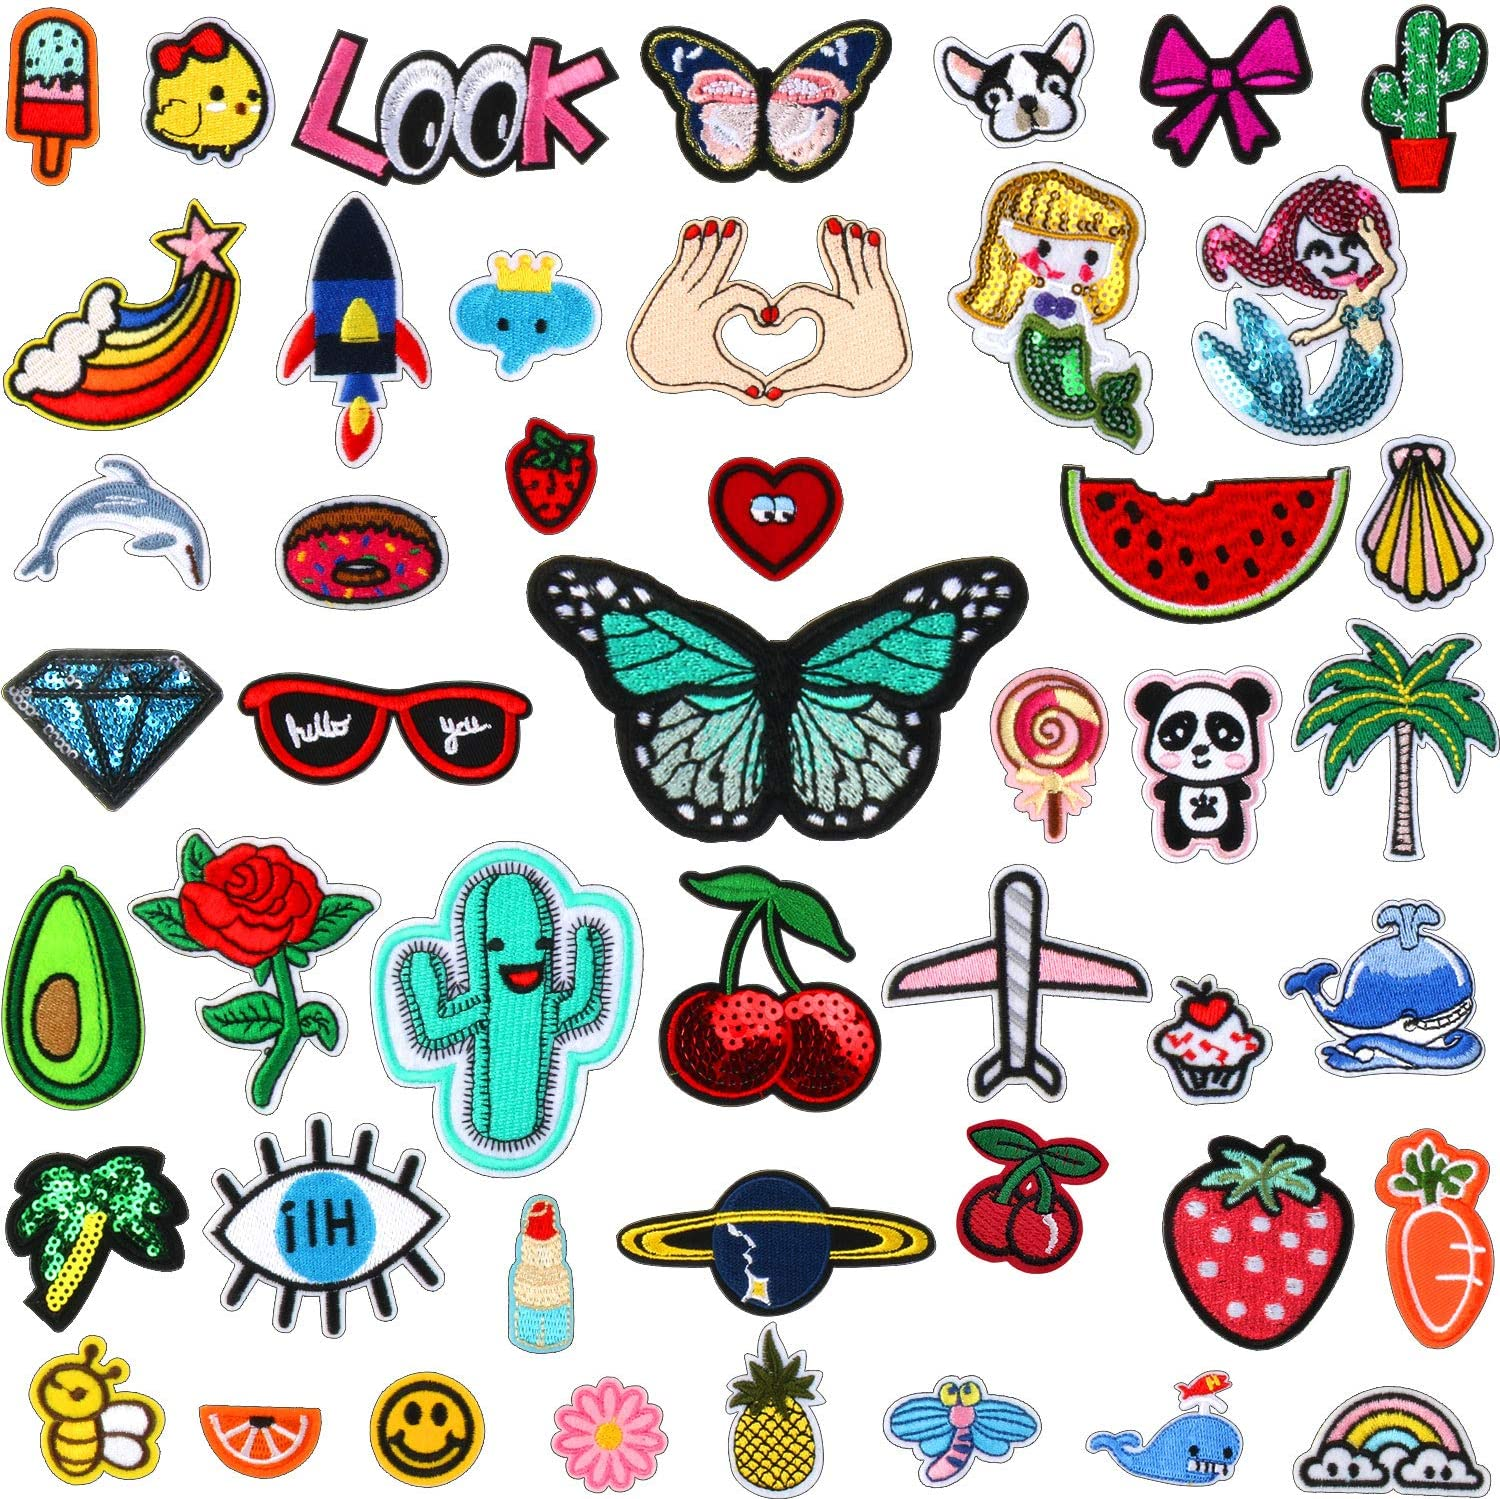 50pcs Assorted Styles Embroidered Iron on Patches DIY Sew Applique Repair Patch